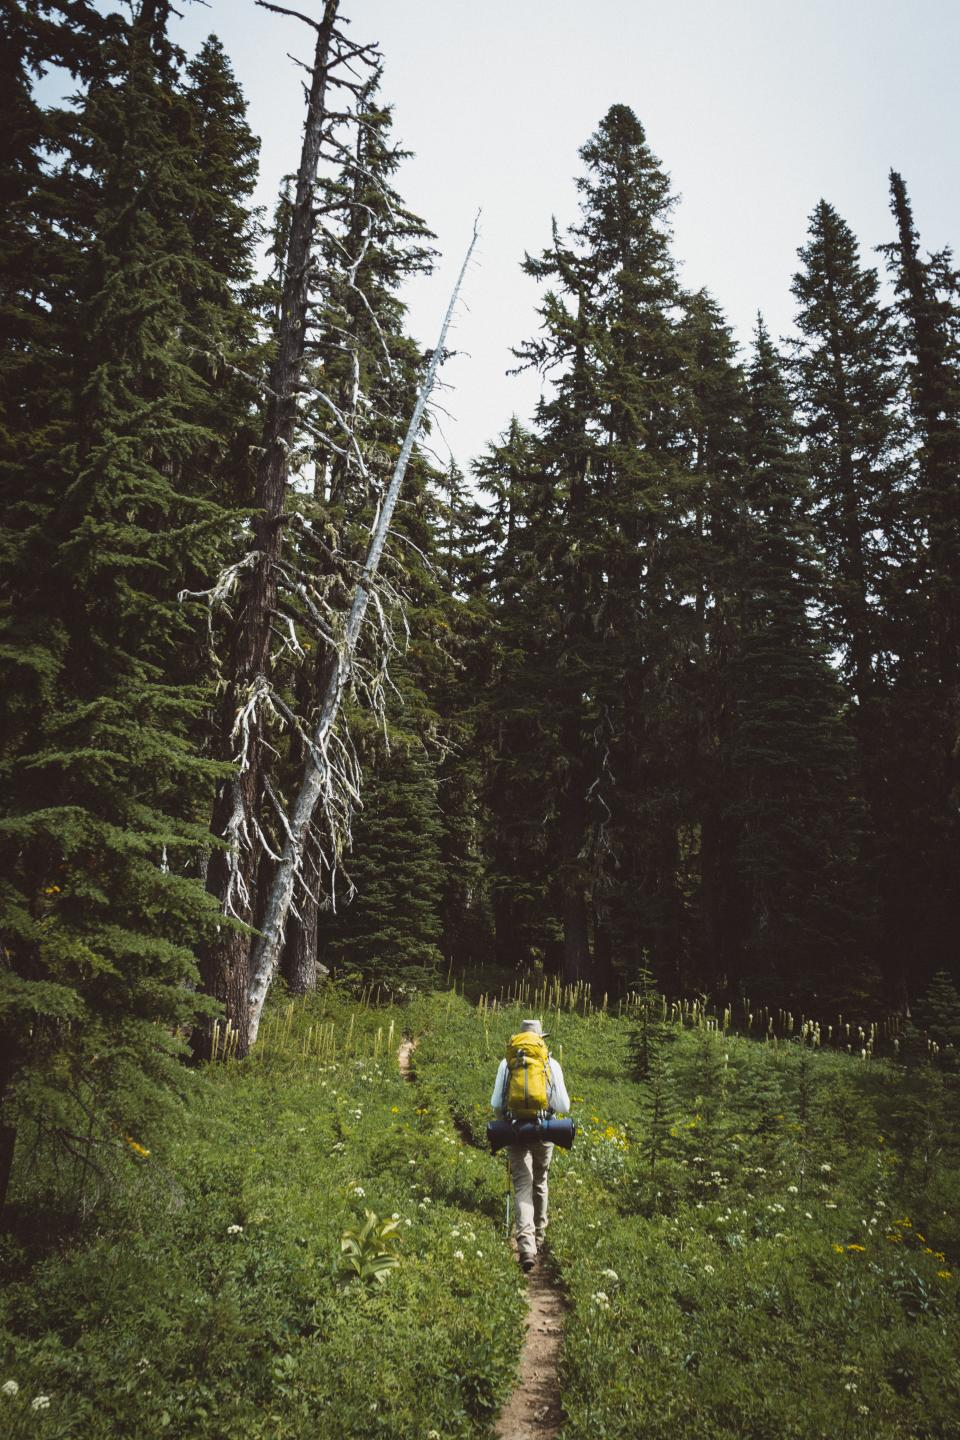 nature, people, travel, adventure, green, grass, trees, plants, woods, forest, mountain, mountaineer, alone, camp, outdoor